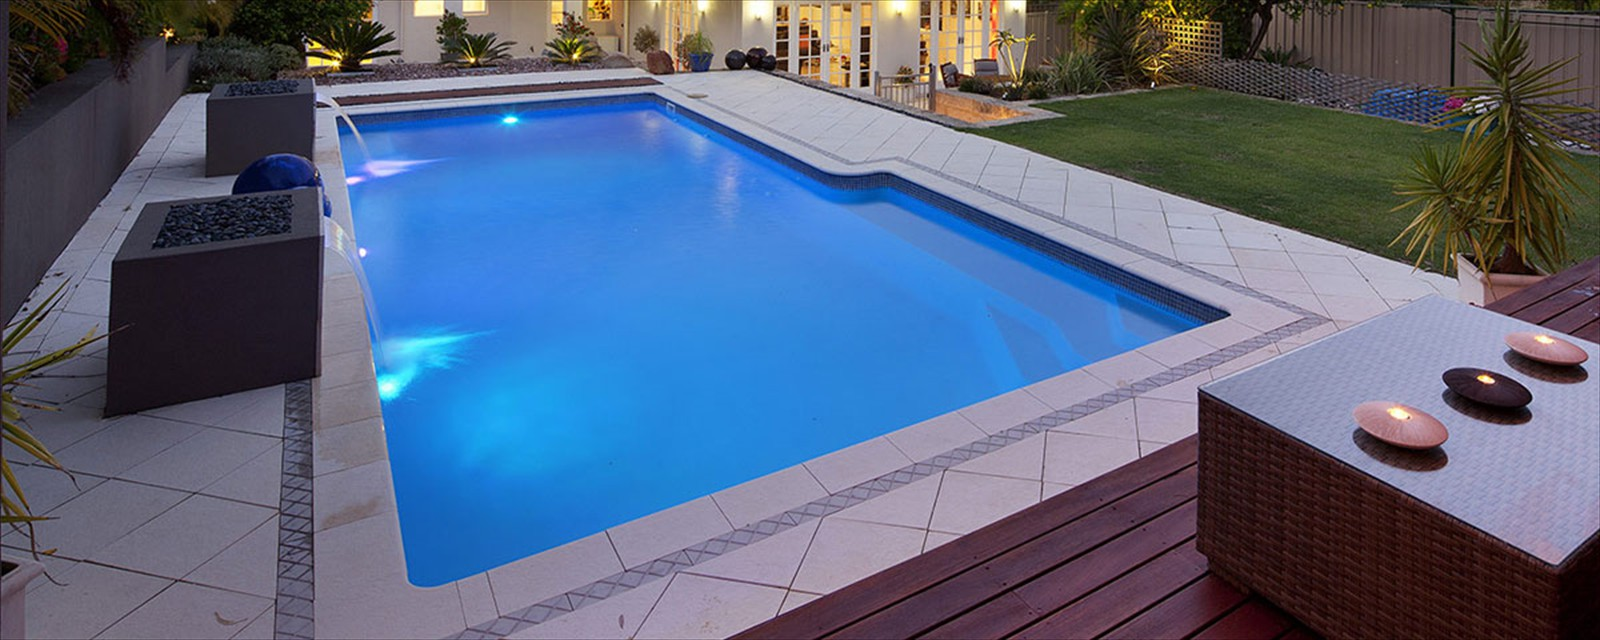 Mariners Pools Concrete Pools Fibreglass Pools